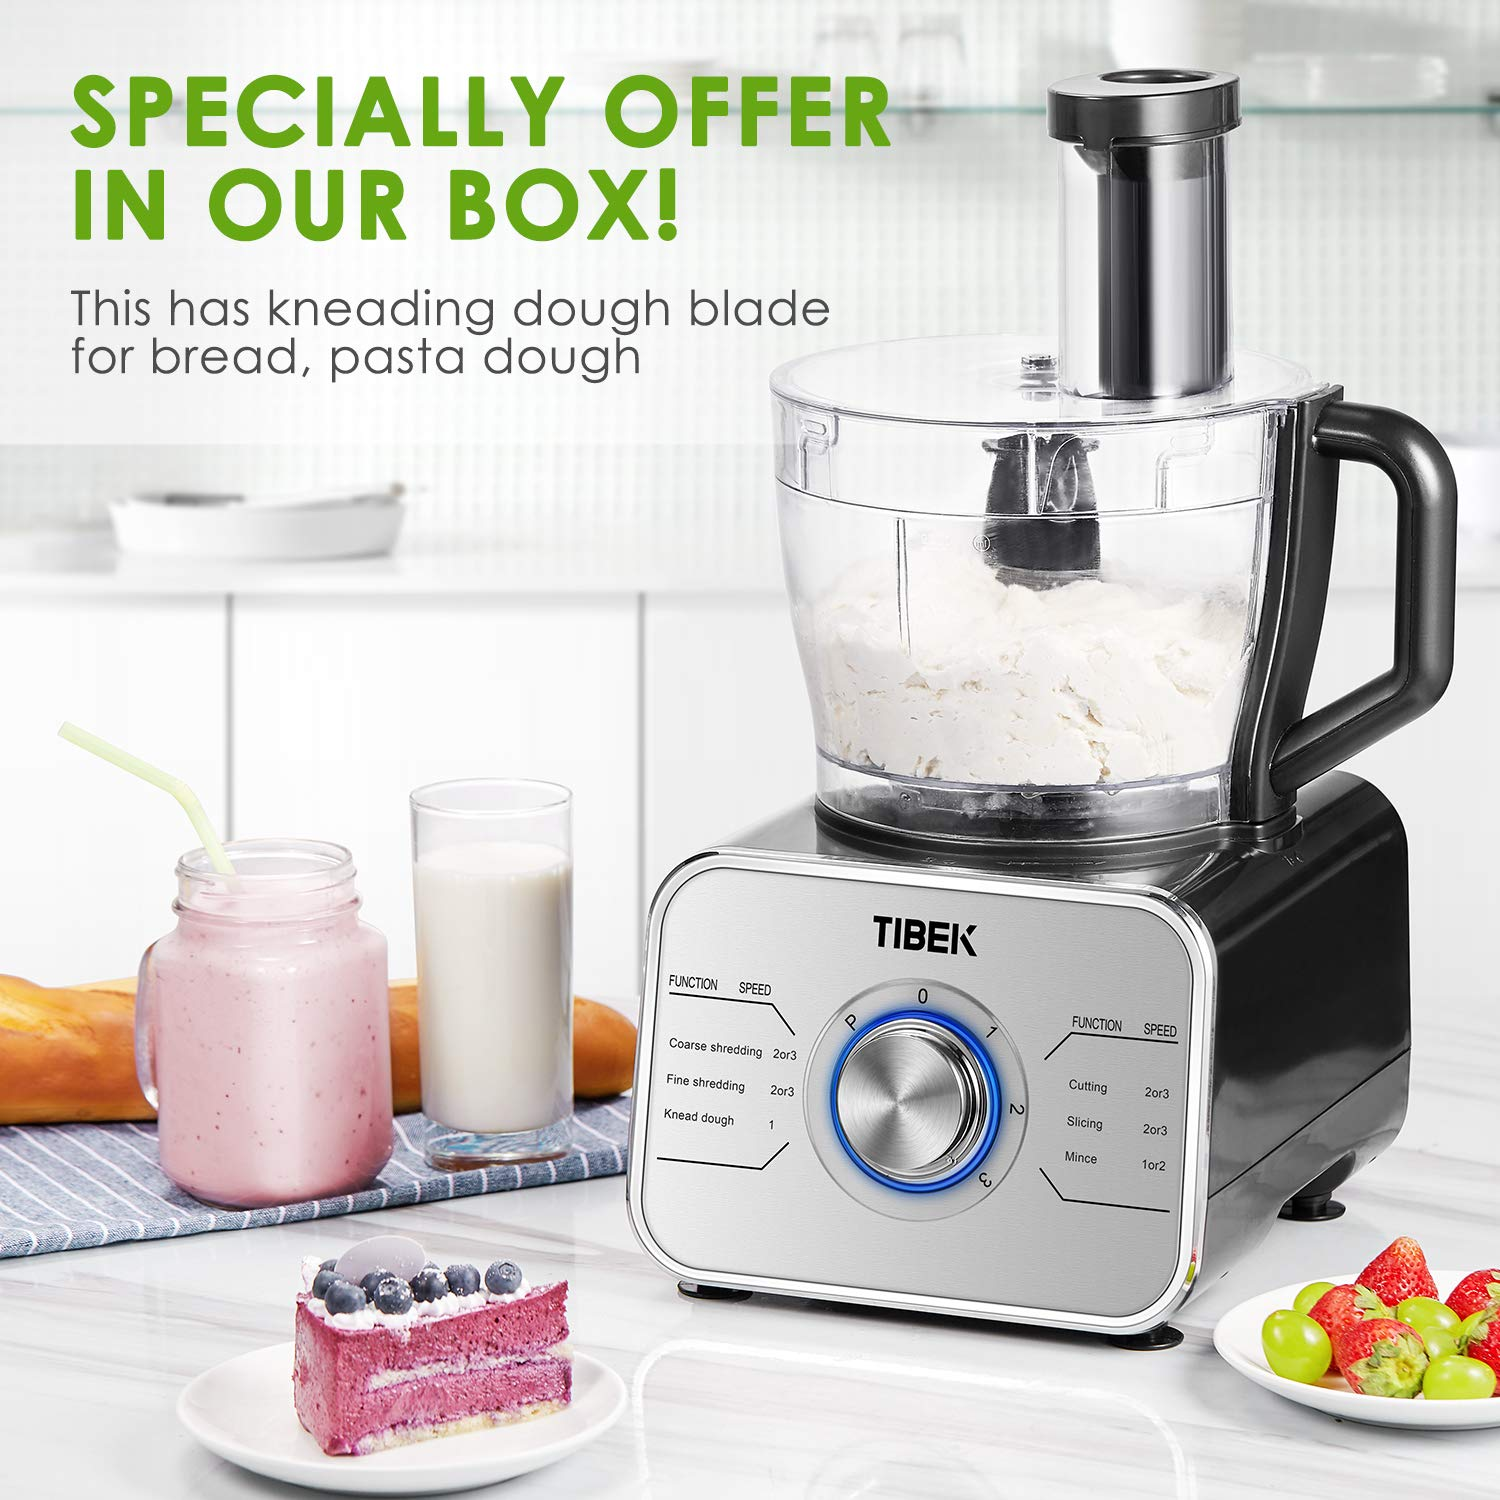 Food Processor 12-Cup, Multi-Function Food Processor 6 Main Functions with Chopper Blade, Dough Blade, Shredder, Slicing Attachments, 3 Speed 600W Powerful Processor, Silver by Tibek (Image #5)